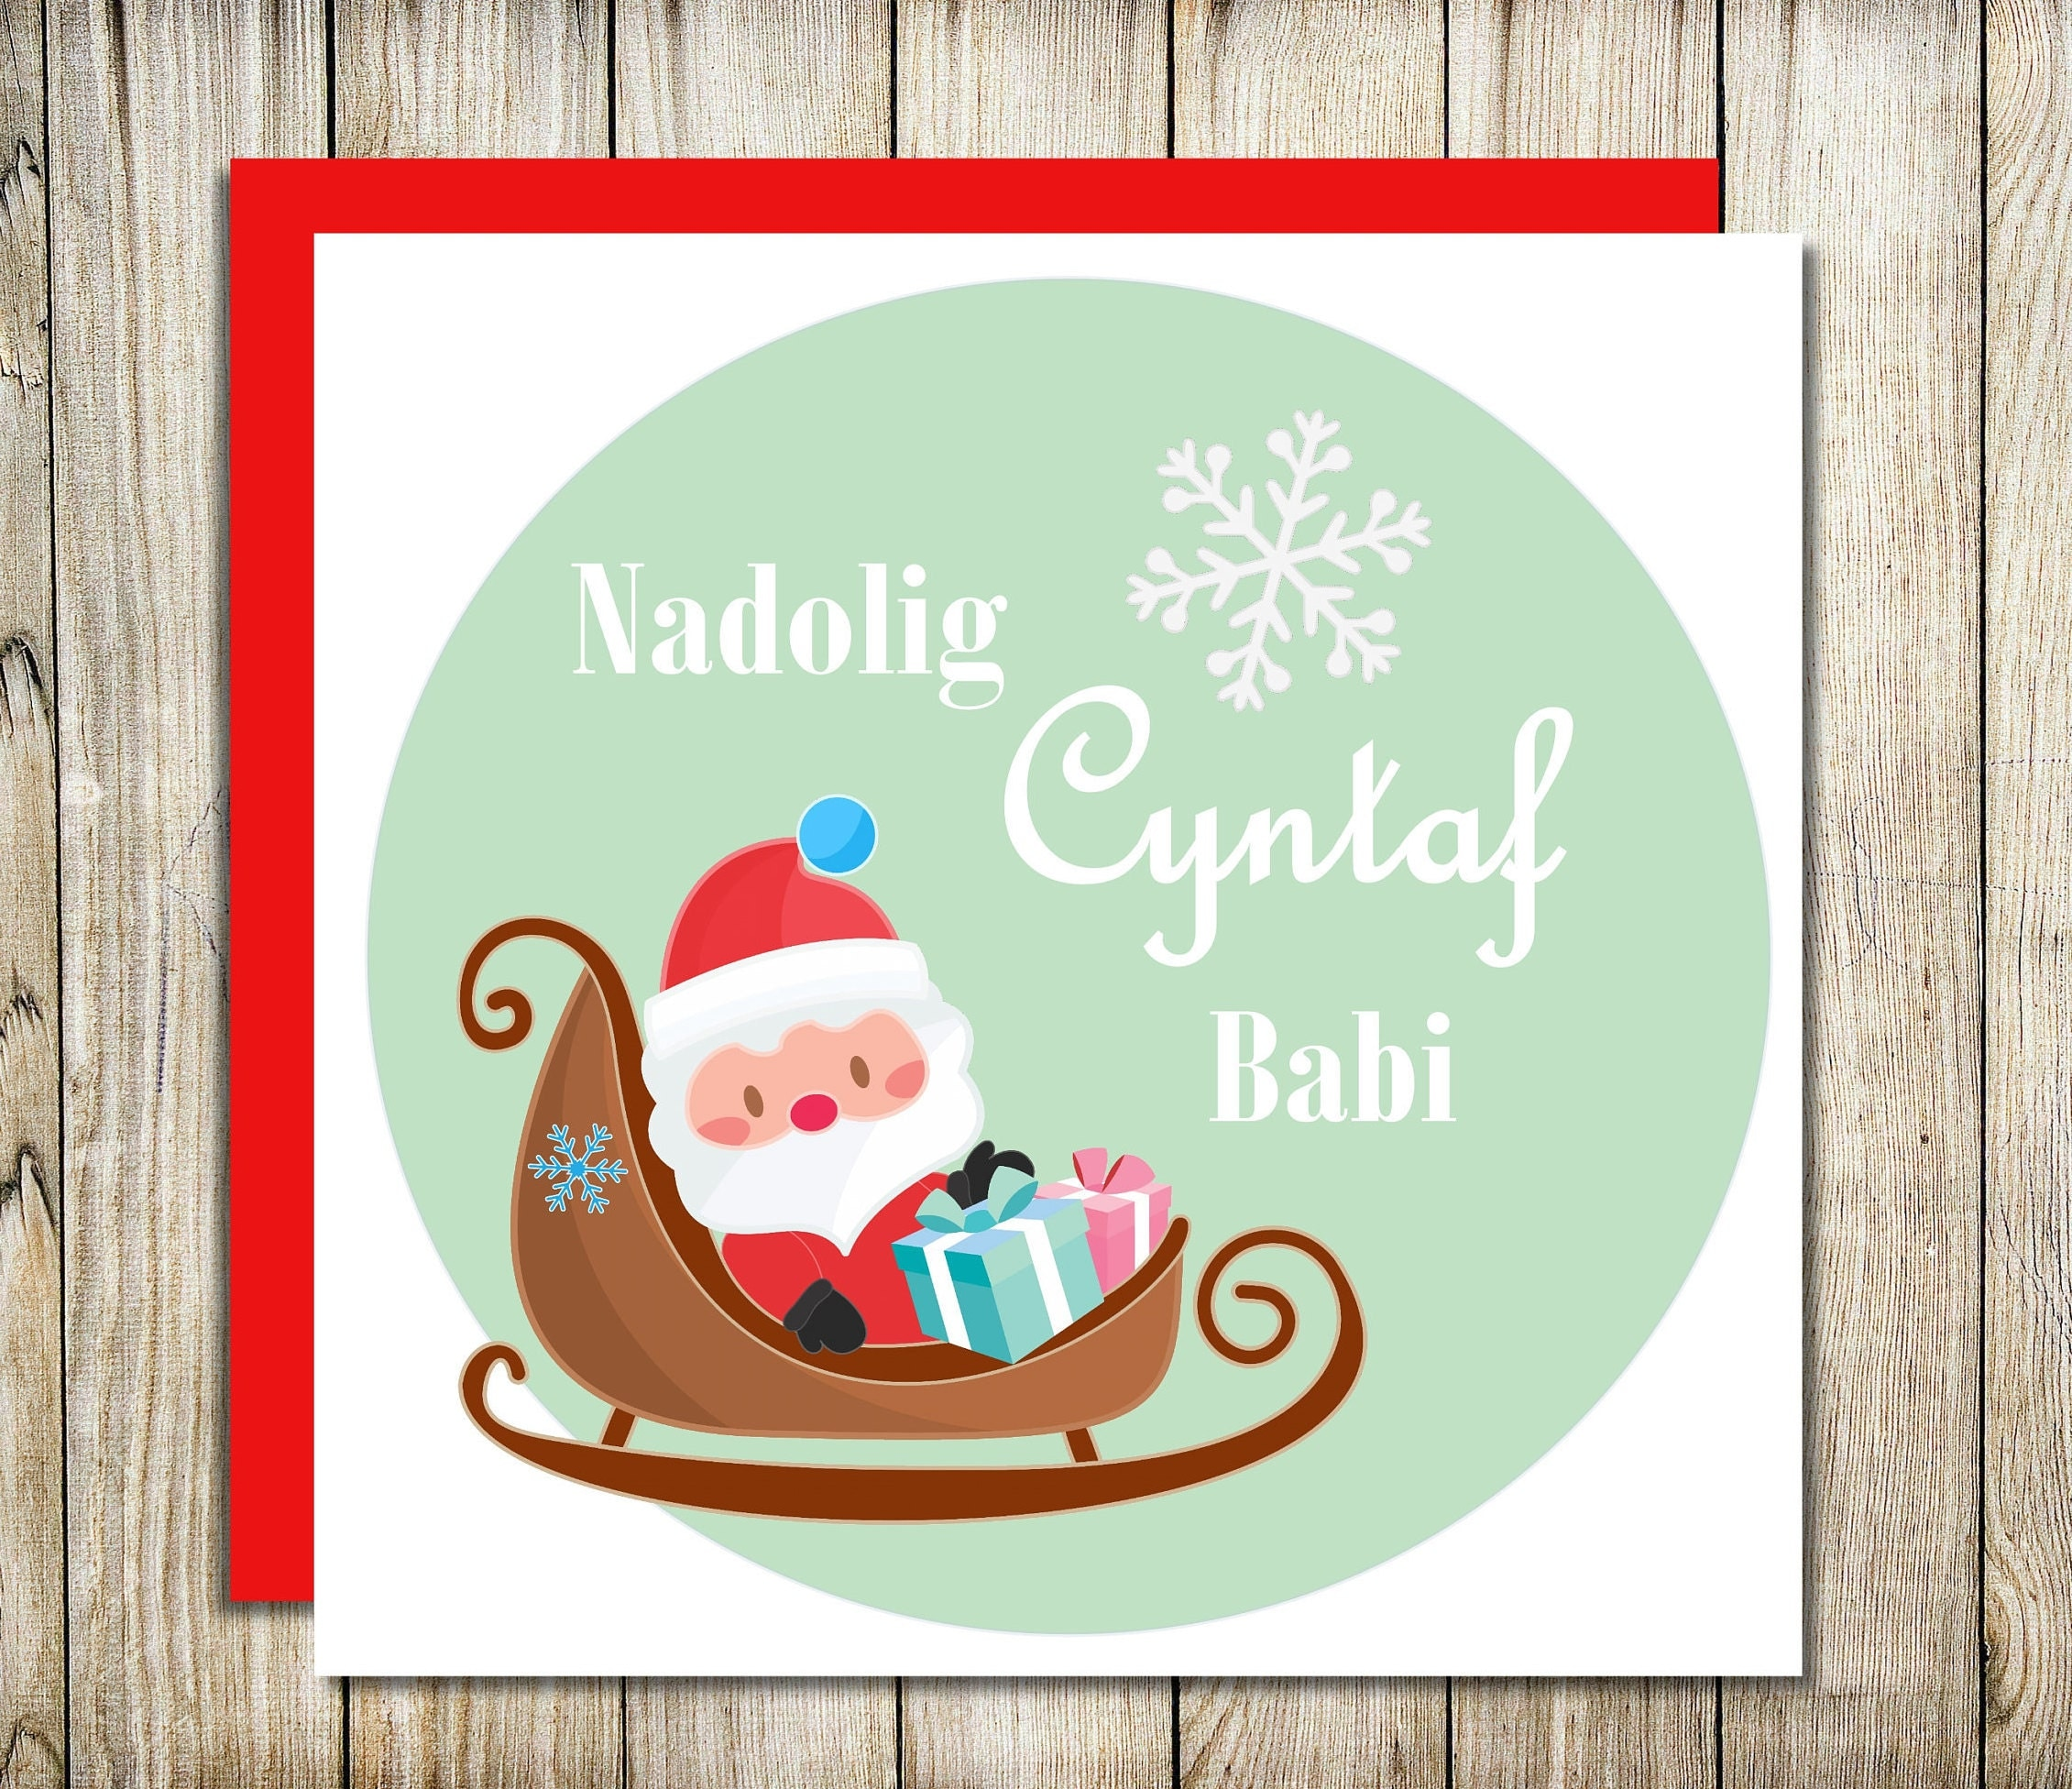 Welsh babys first christmas card nadolig cyntaf babi welsh welsh babys first christmas card nadolig cyntaf babi welsh language cards babys 1st kristyandbryce Image collections